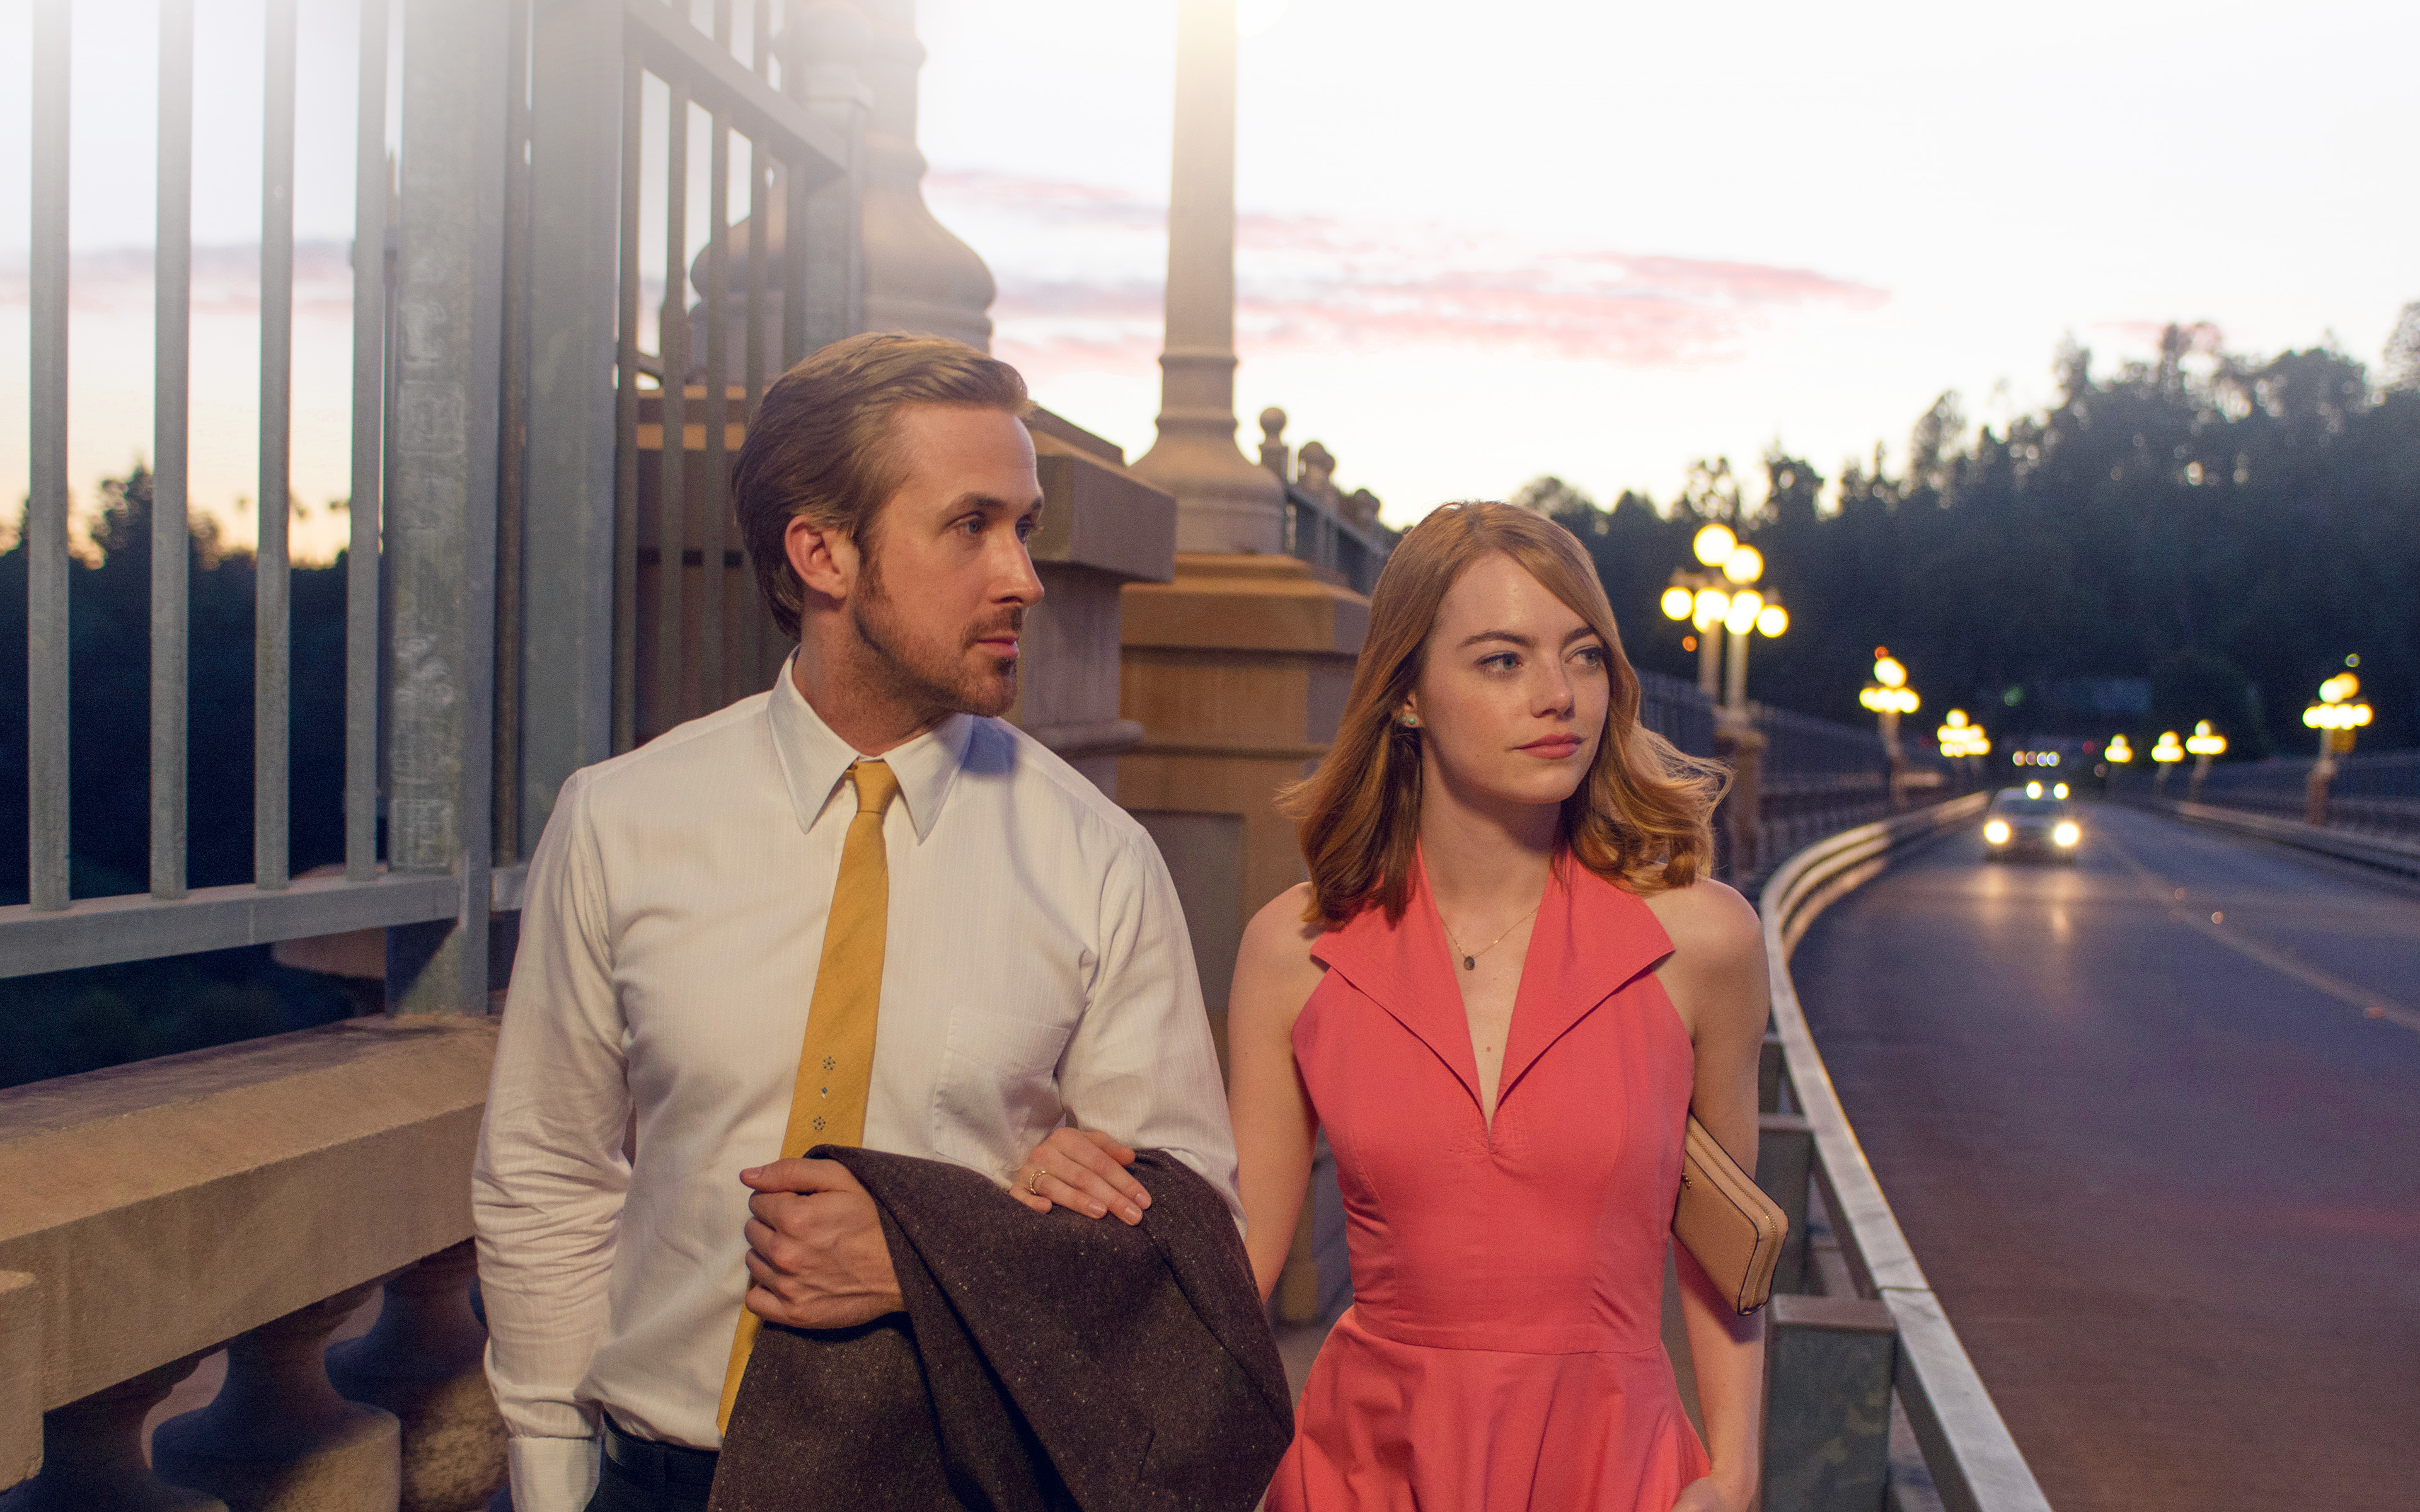 Cute Fall Iphone Wallpapers Hl40 Lalaland Ryan Gosling Emma Stone Red Film Wallpaper